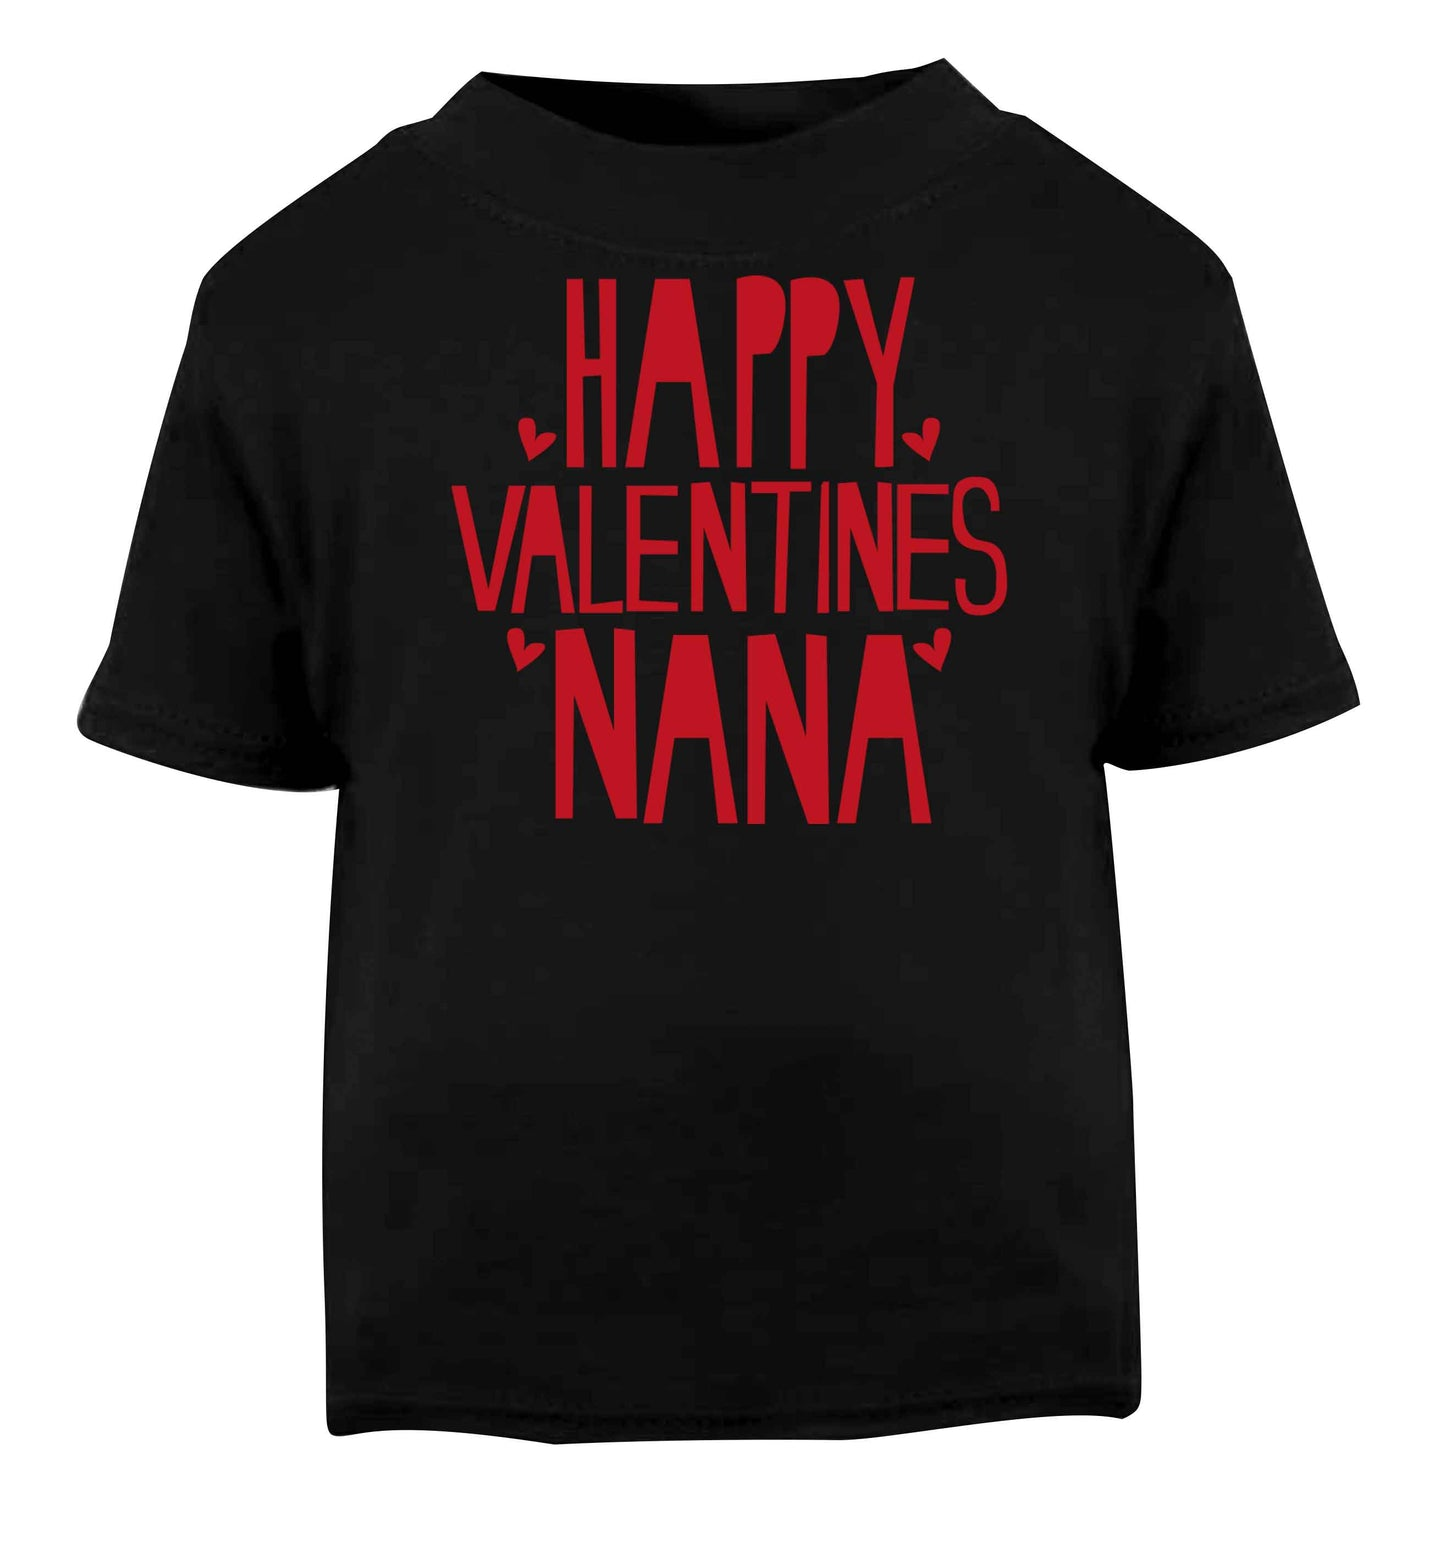 Happy valentines nana Black baby toddler Tshirt 2 years